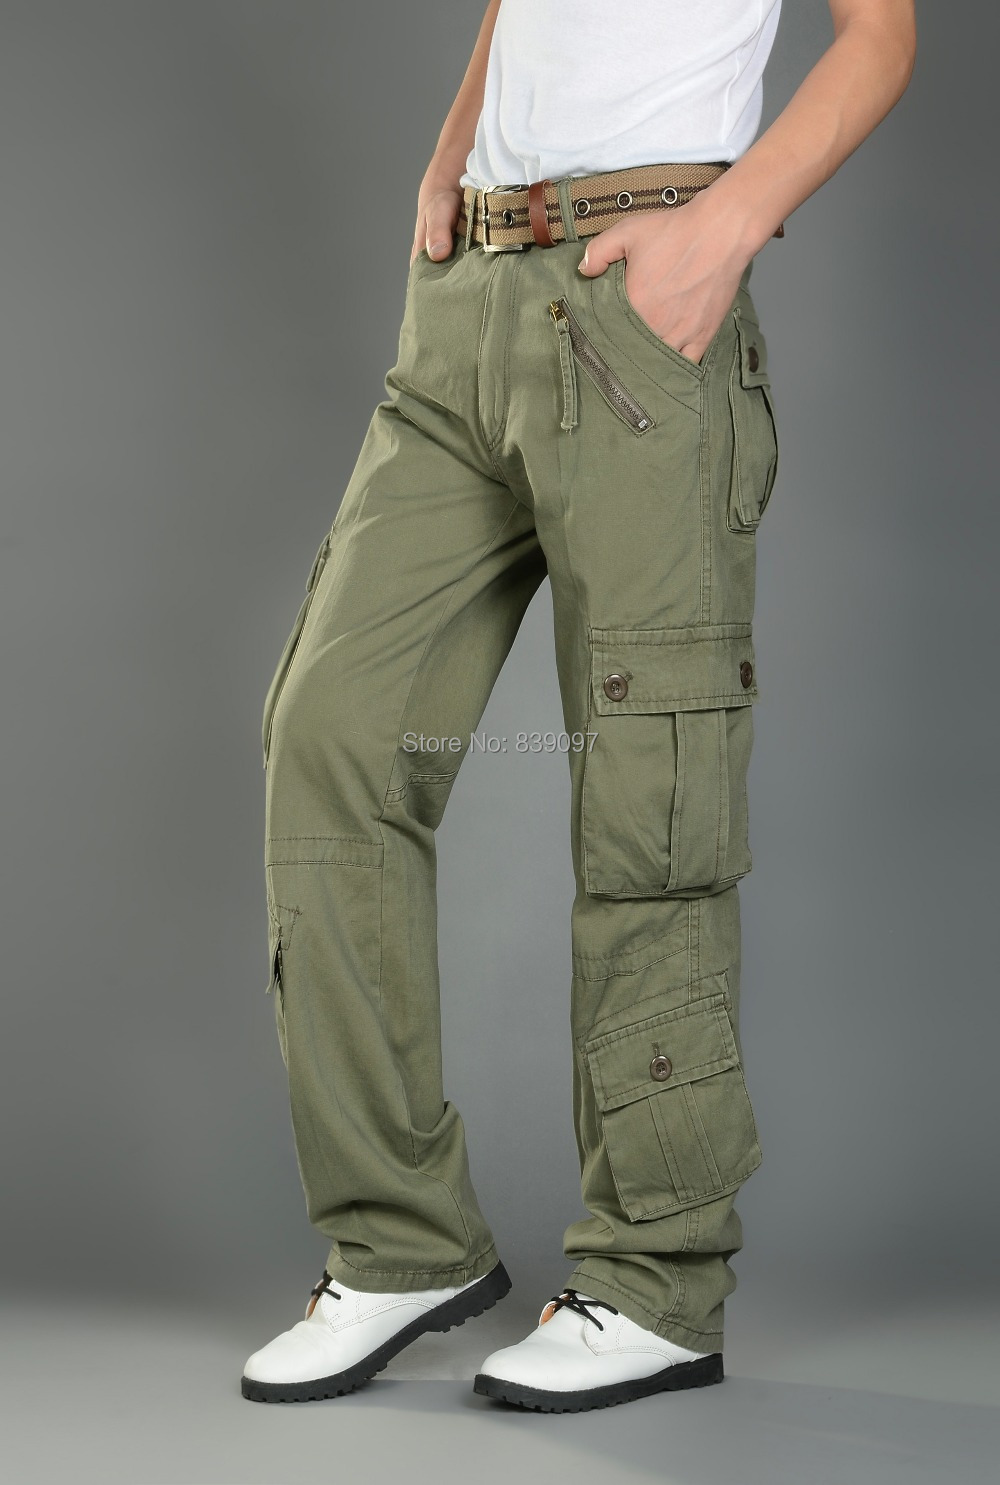 mens cargo pants online - Pi Pants